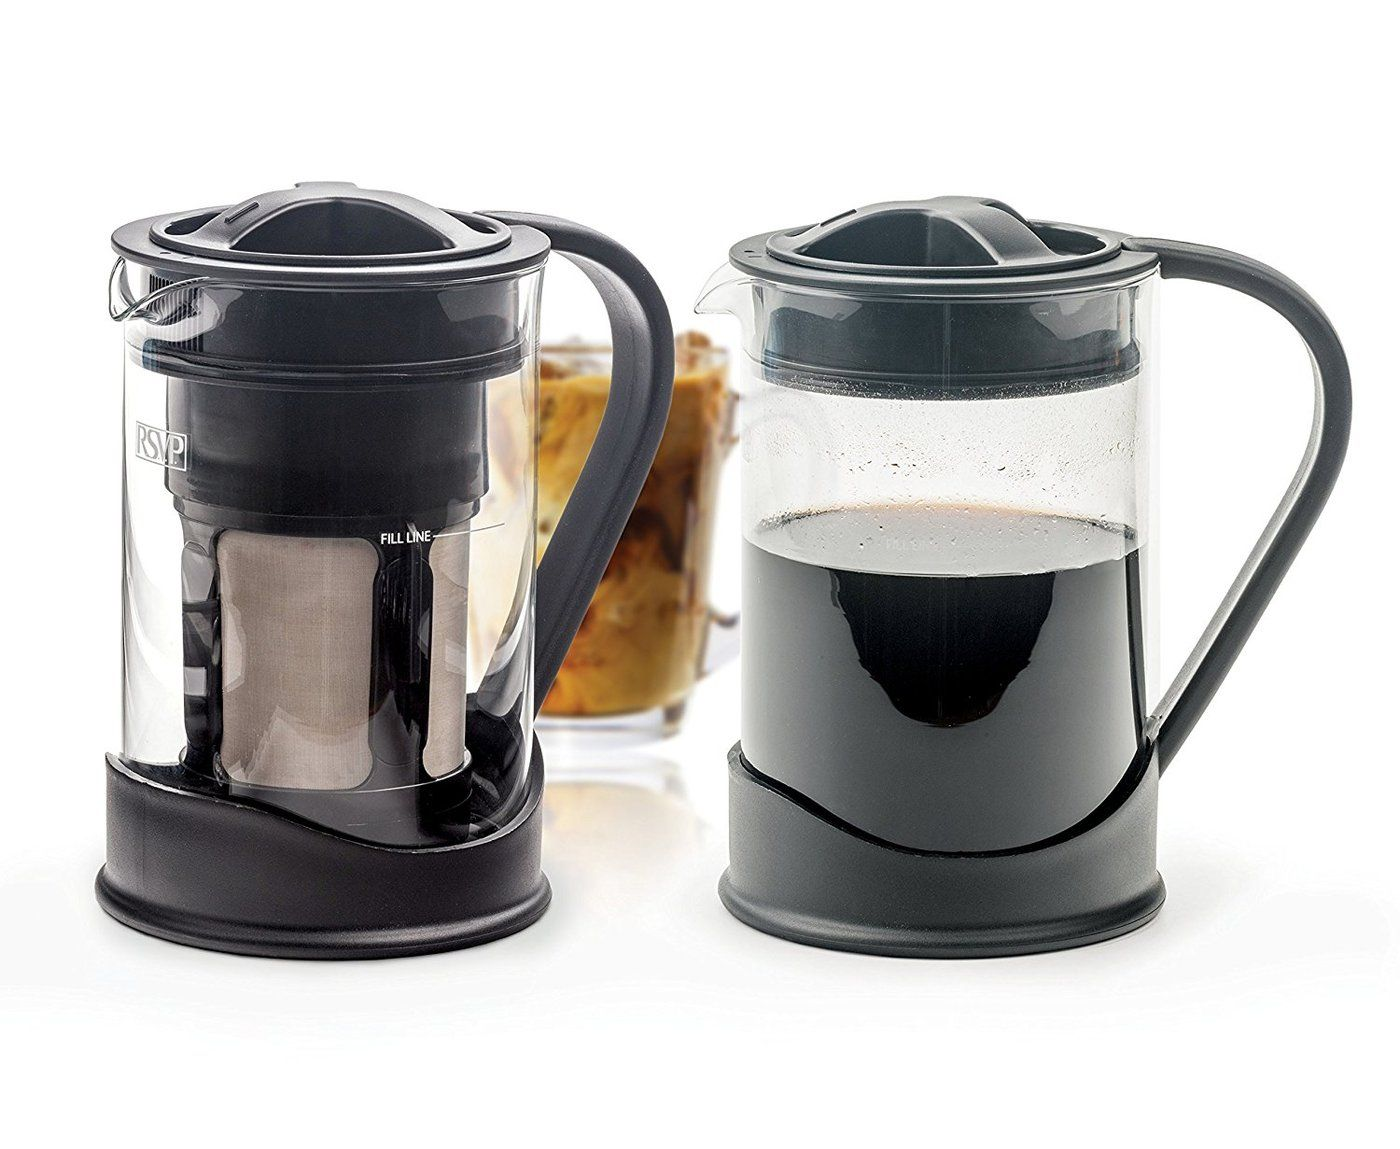 RSVP Cold Brew Coffee Maker Coffee maker, Cold brew